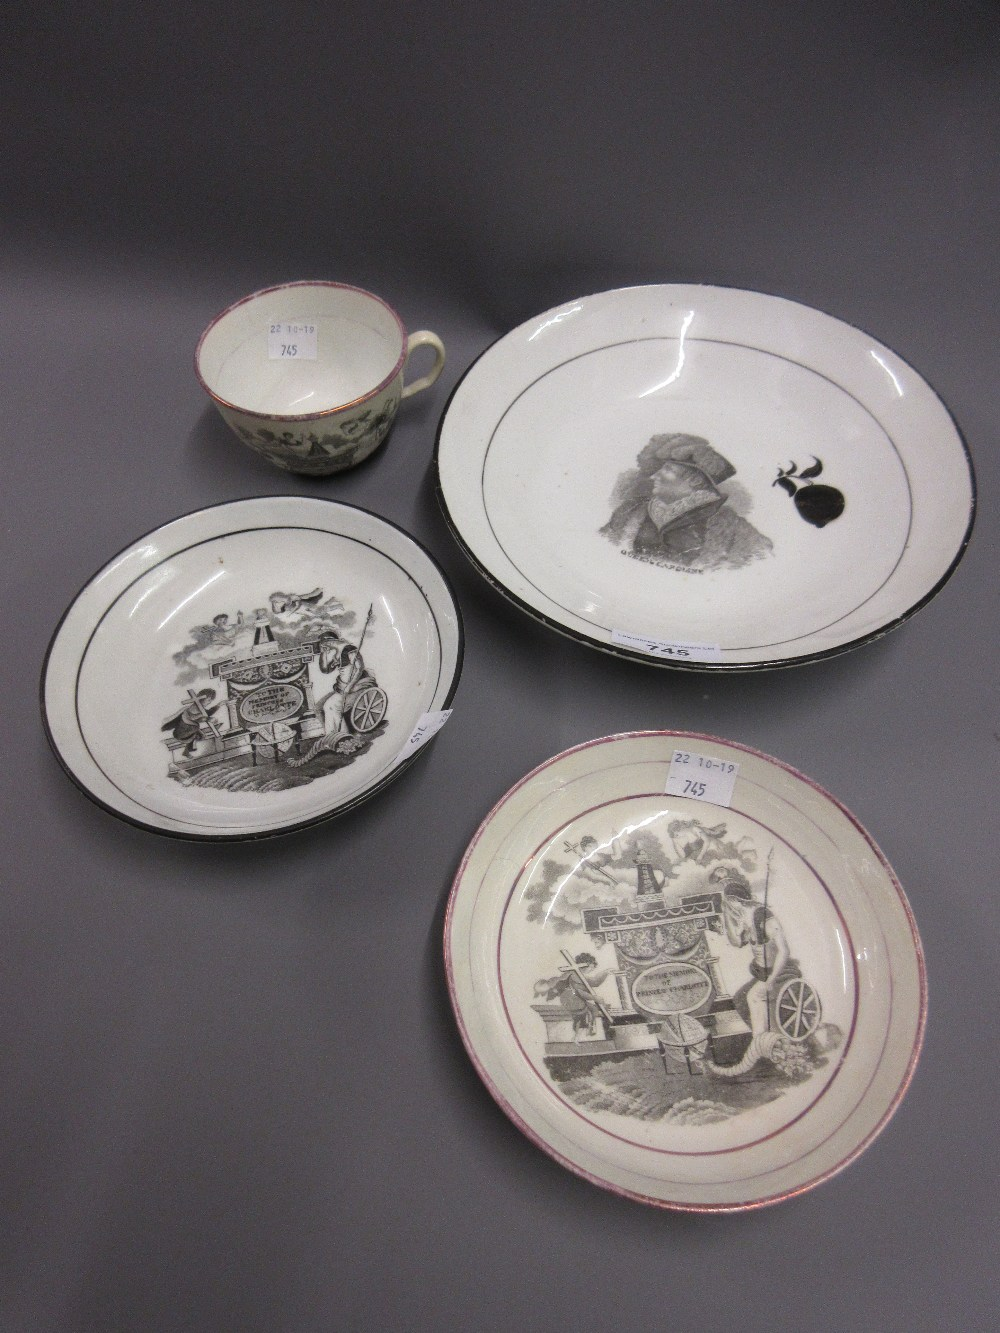 Lot 745 - Regency bat ?? printed commemorative cup and saucer for the death of Princess Charlotte 1817,